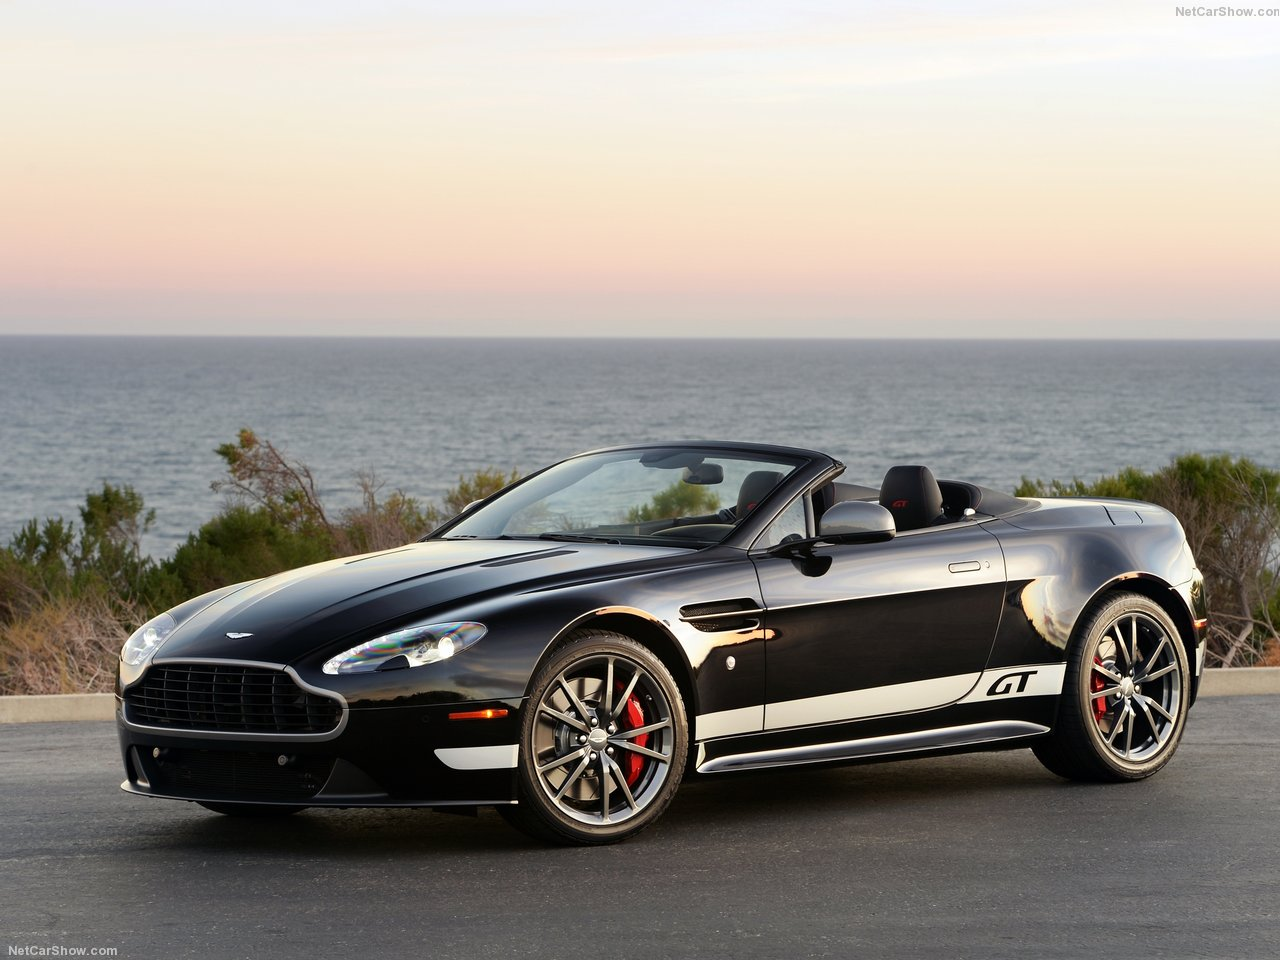 Aston Martin V8 Vantage GT Roadster photo 138300